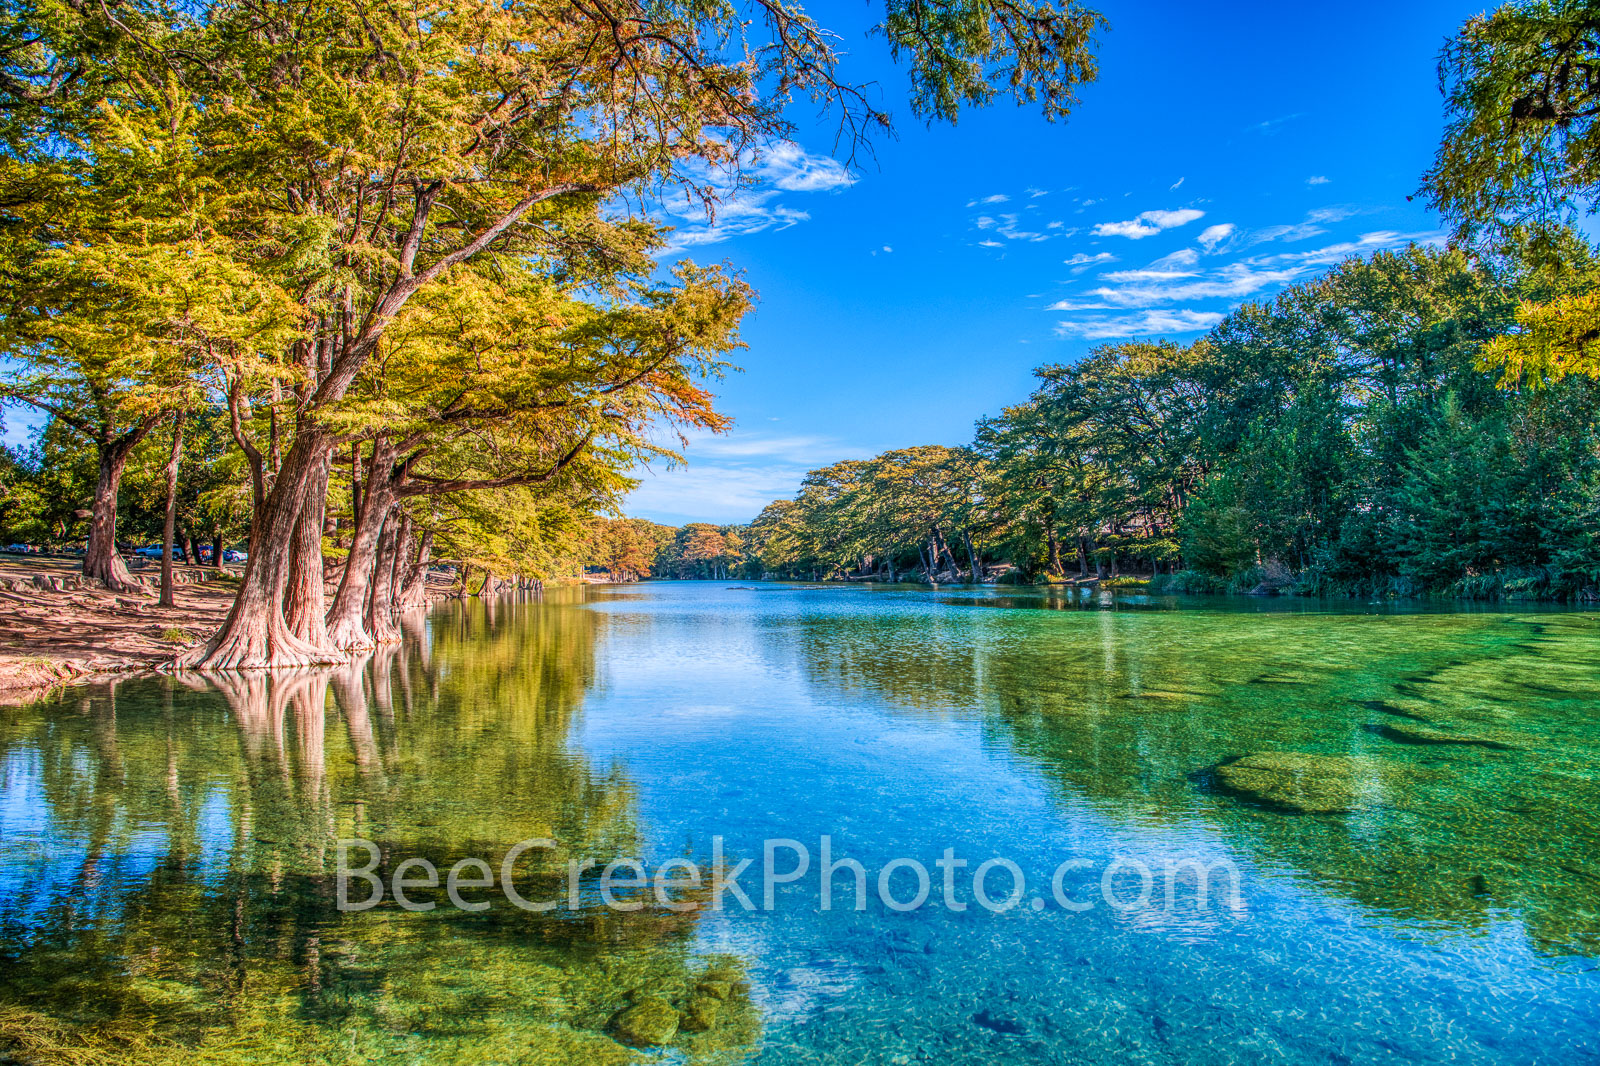 hill country, texas hill country, emeral green waters, blue green, frio river, bald cypress, cypress, reflections, clear water, beauty, golden, Garner state park, garner, blue sky, whispy clouds, , photo